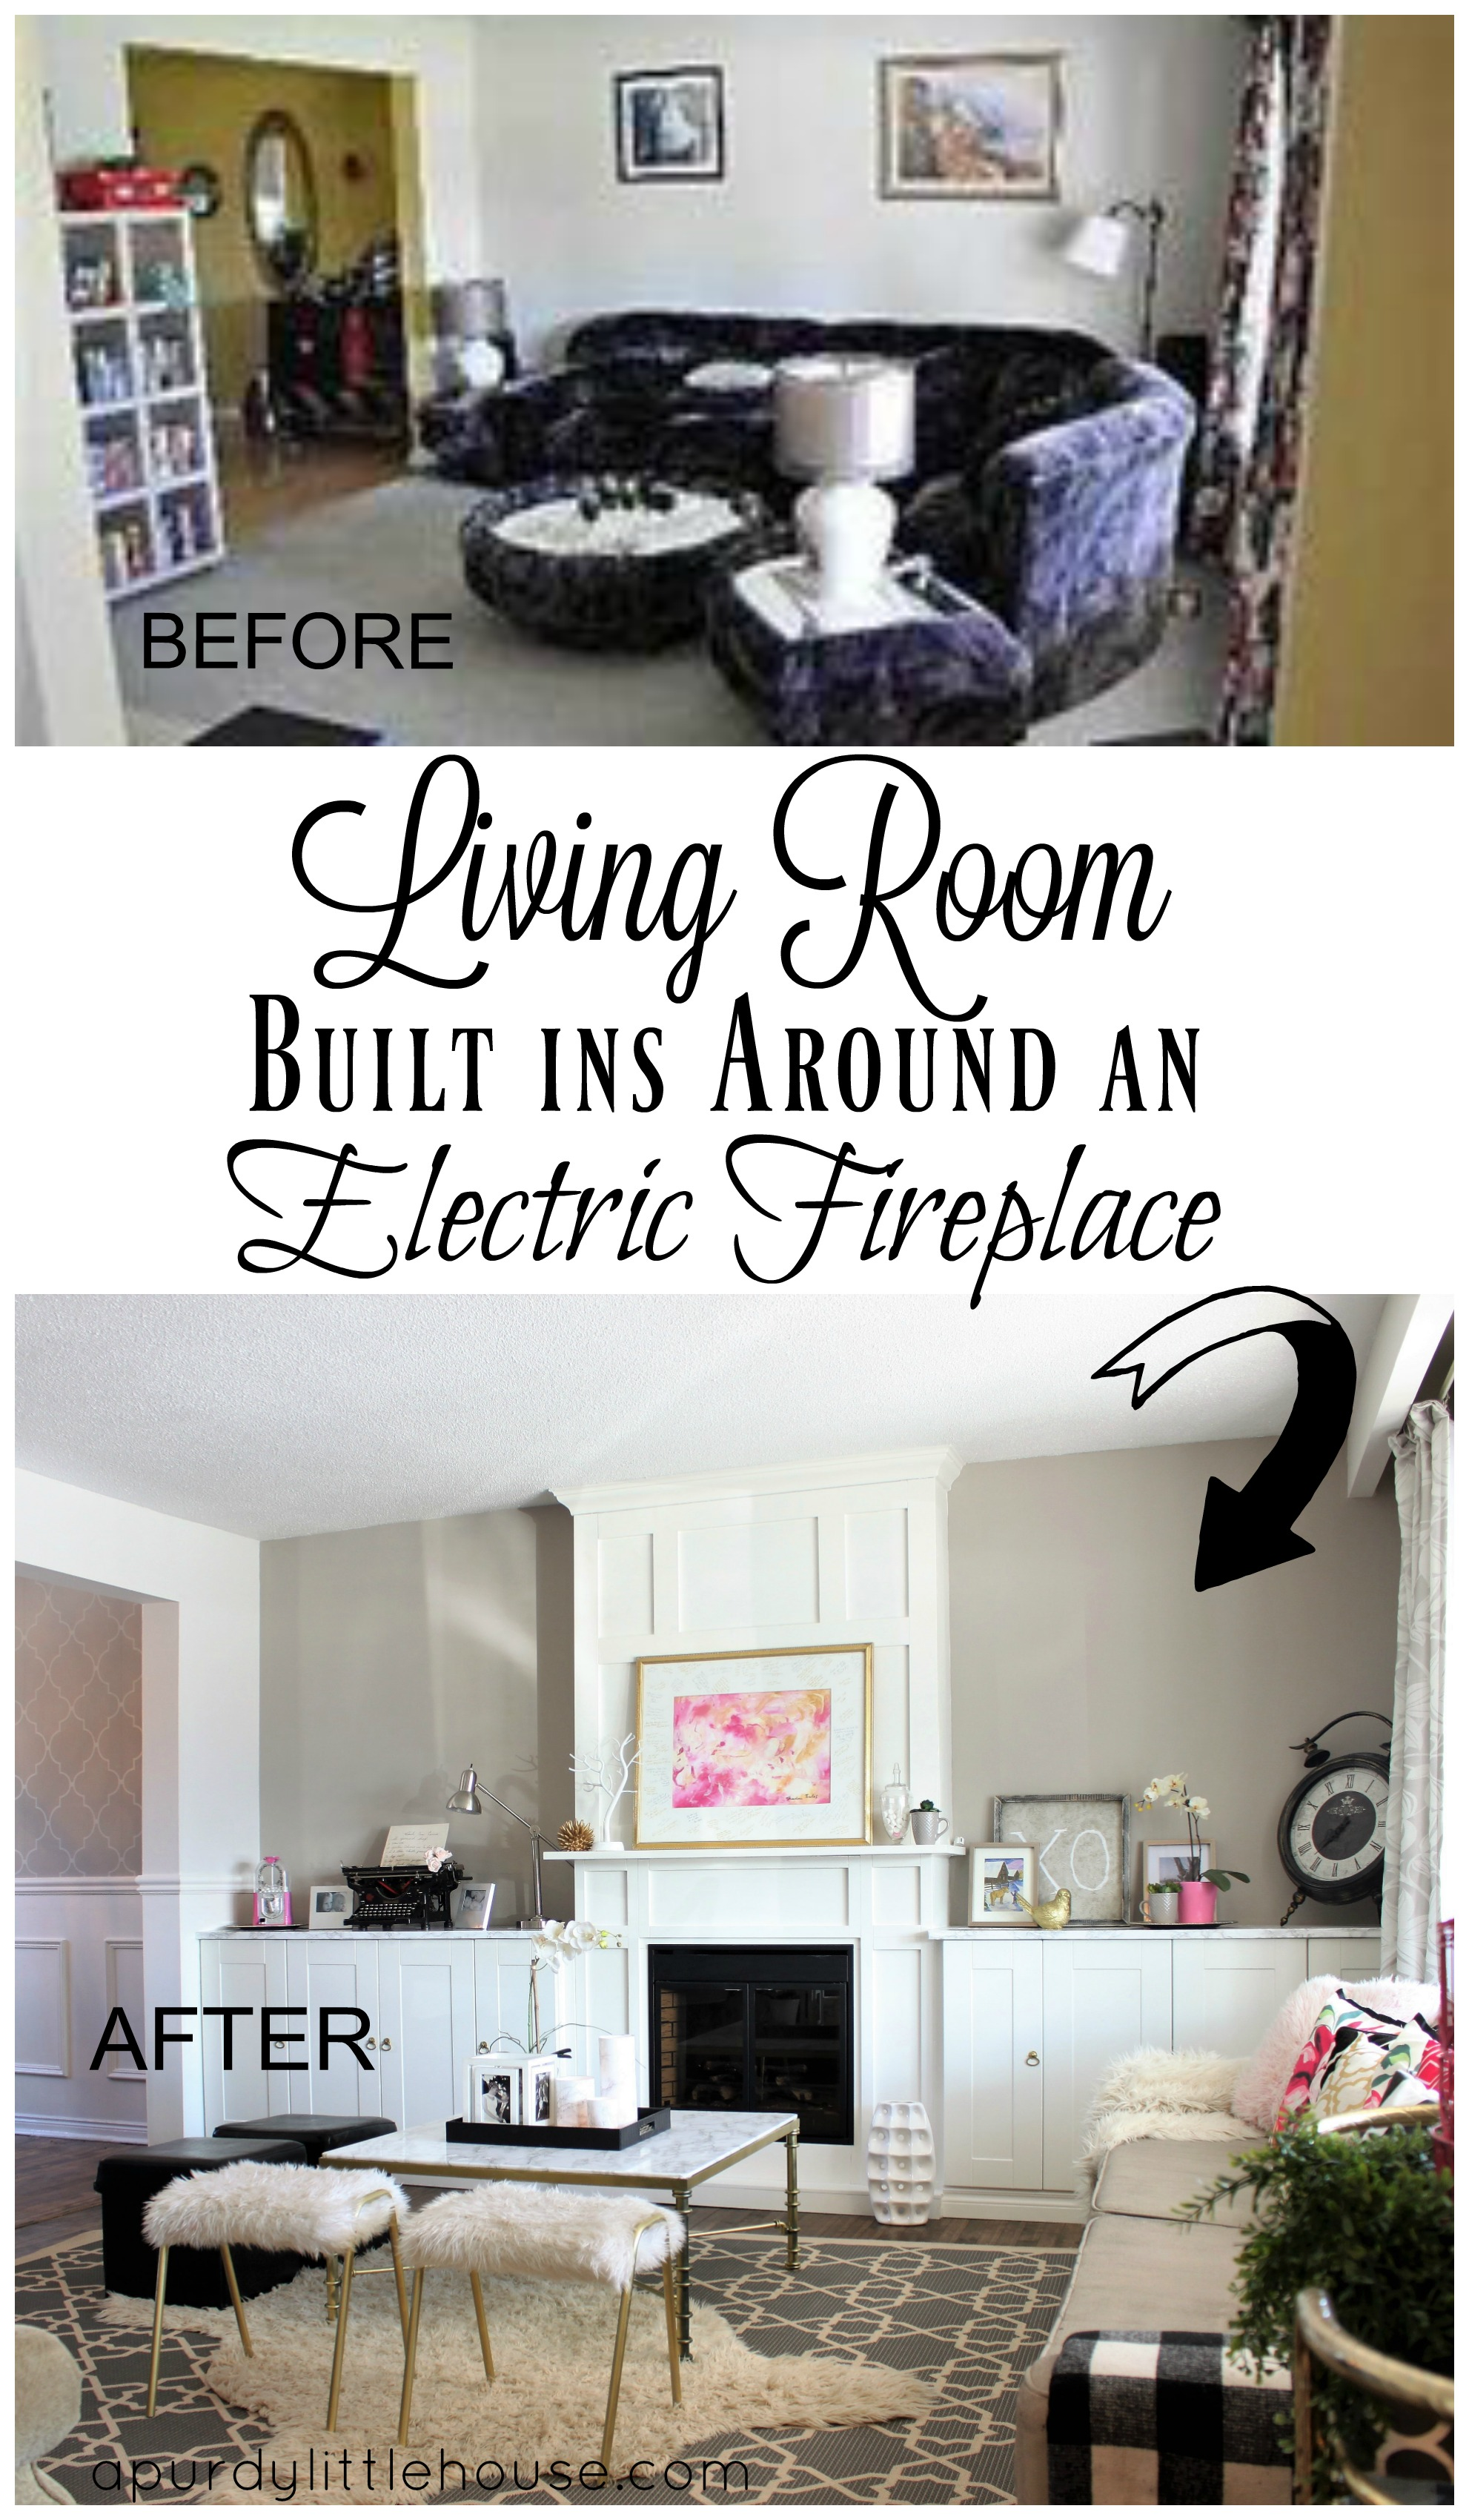 See how I created Living Room Built ins around an electric fireplace to give my home a feature wall and focal point to my formal living room.